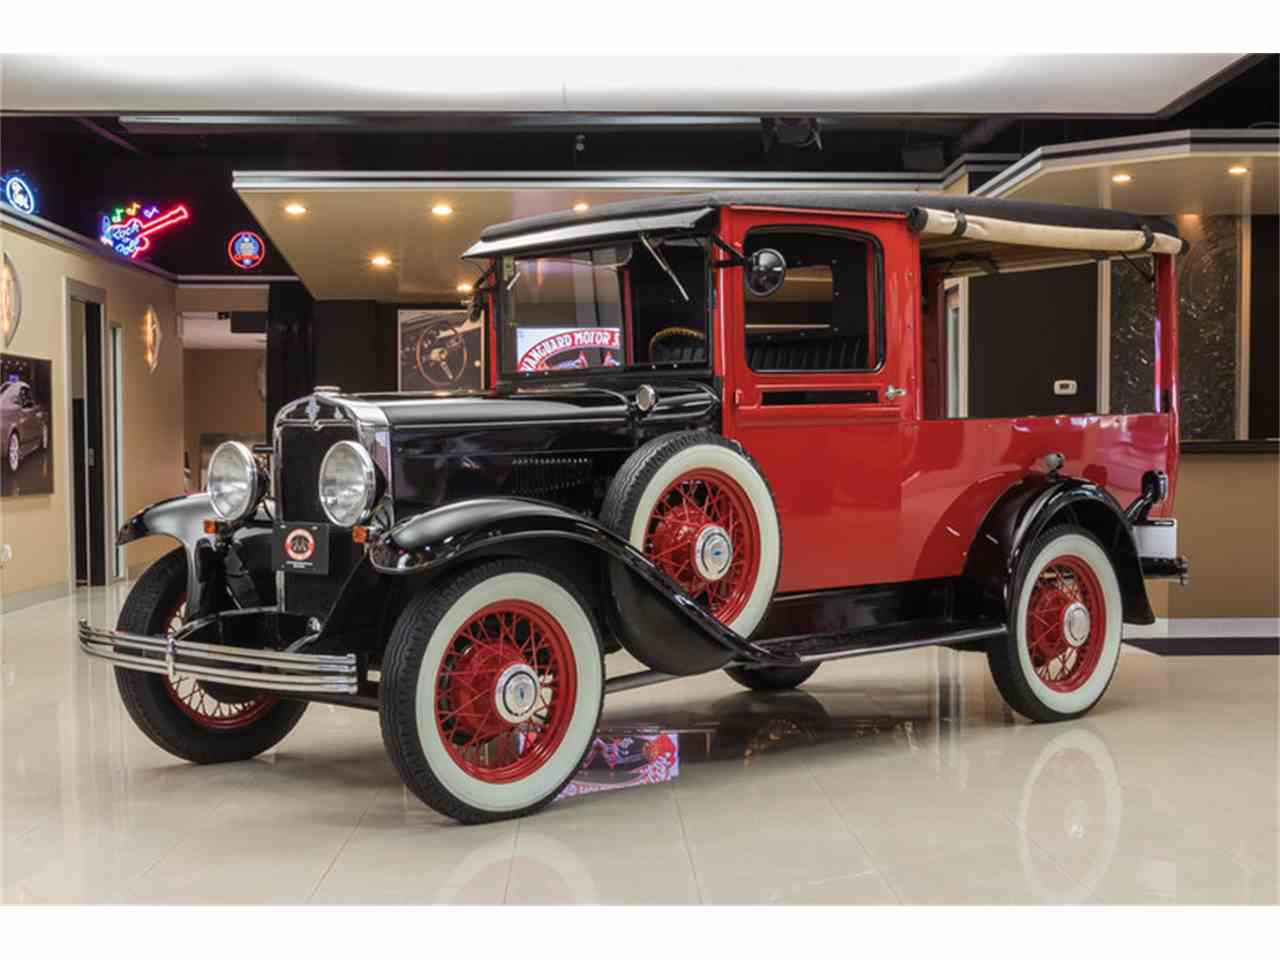 Large Picture of Classic 1930 Chevrolet Huckster Truck - $49,900.00 - L5ME